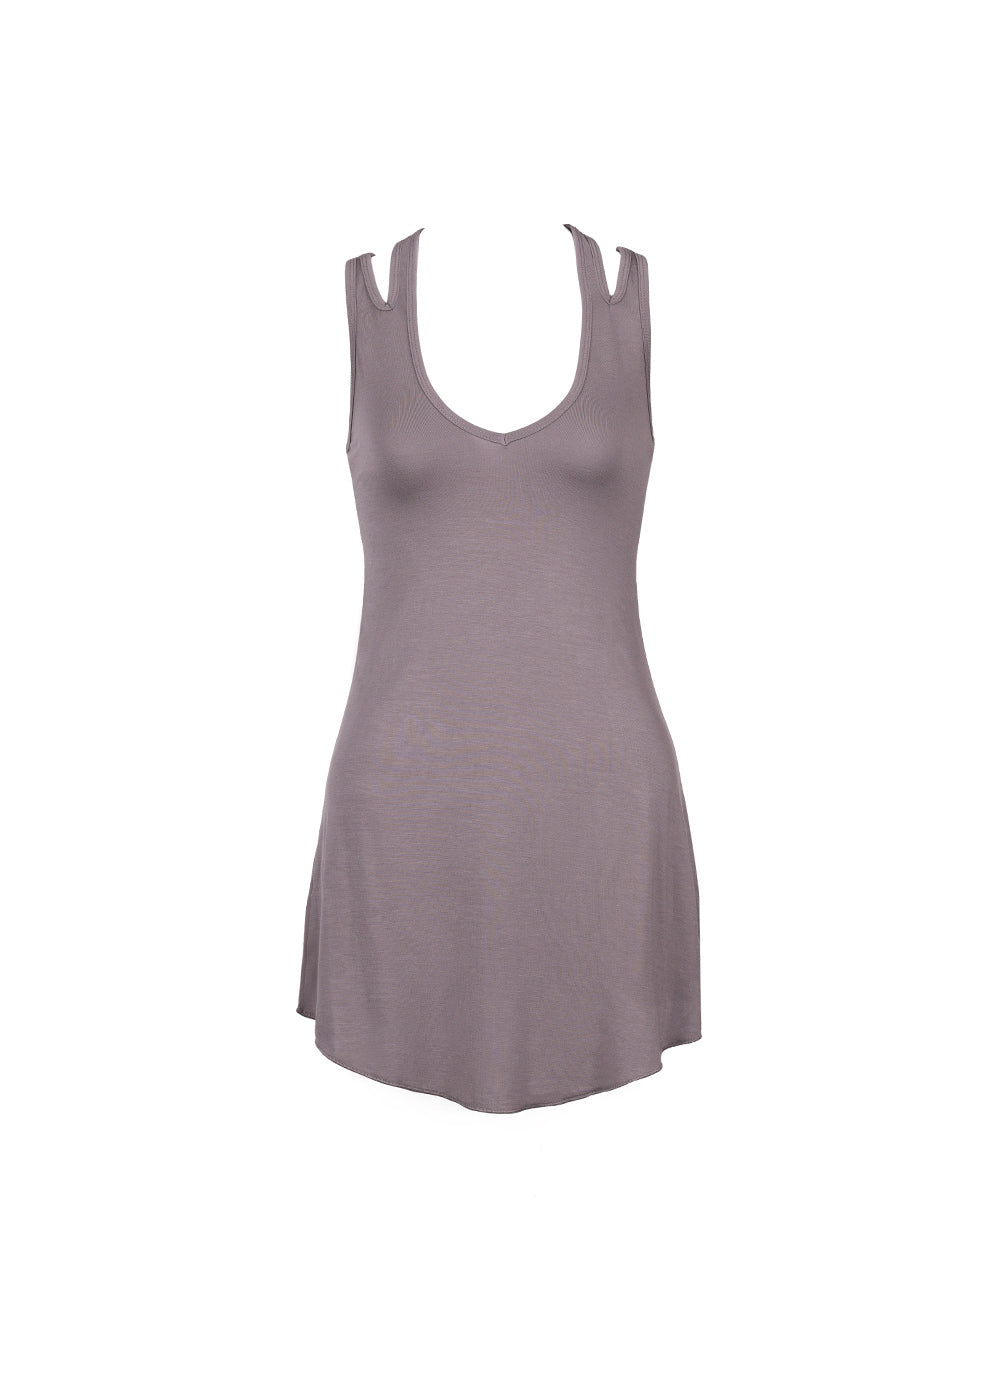 Hemp lyocell long grey v-neck tank with thick straps